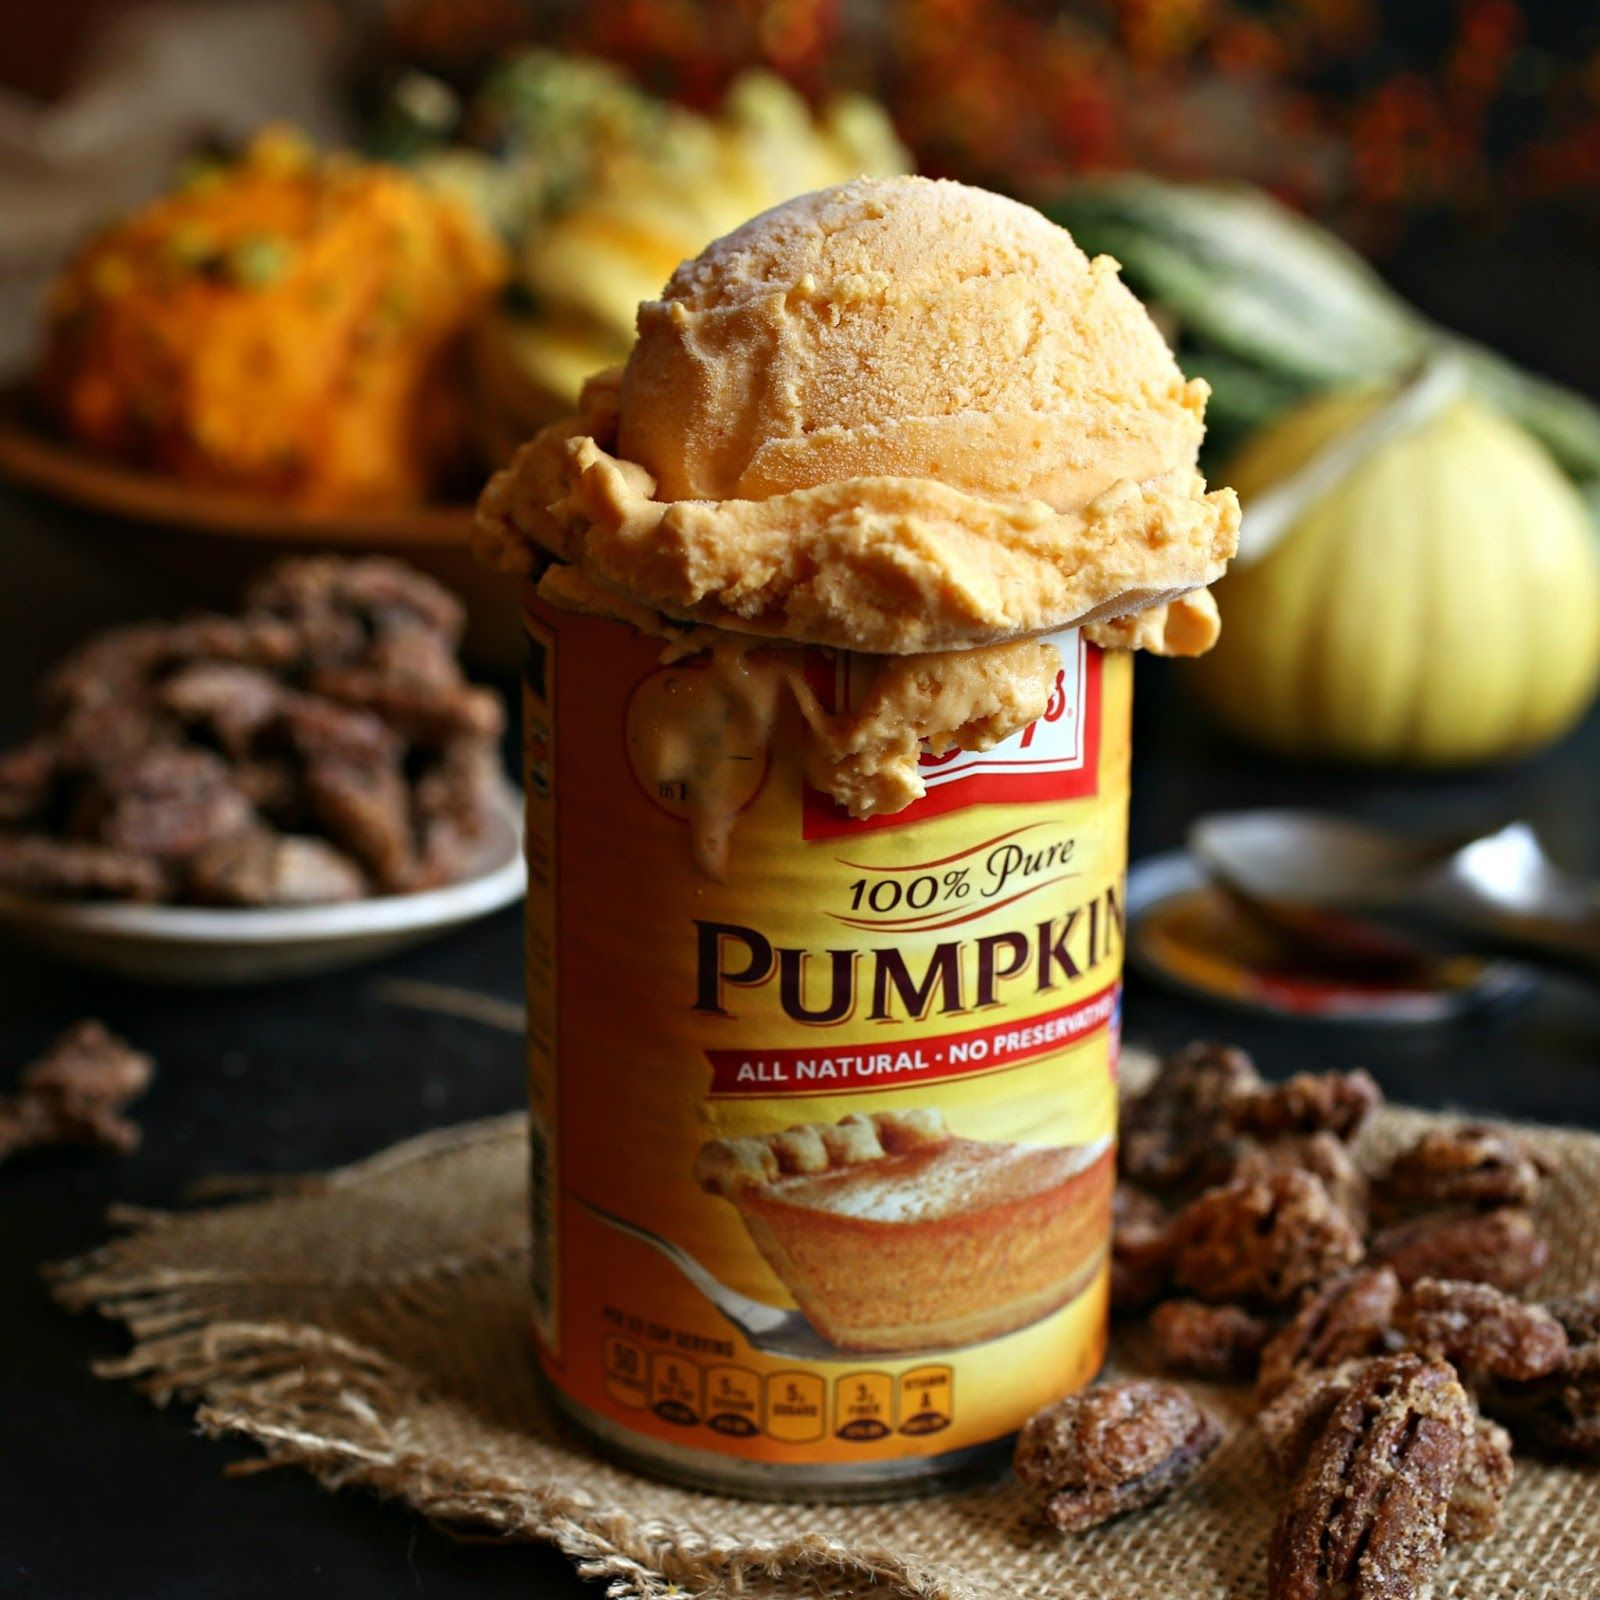 Pumpkin Cheesecake Ice Cream with Praline Pecans #cheesecakeicecream